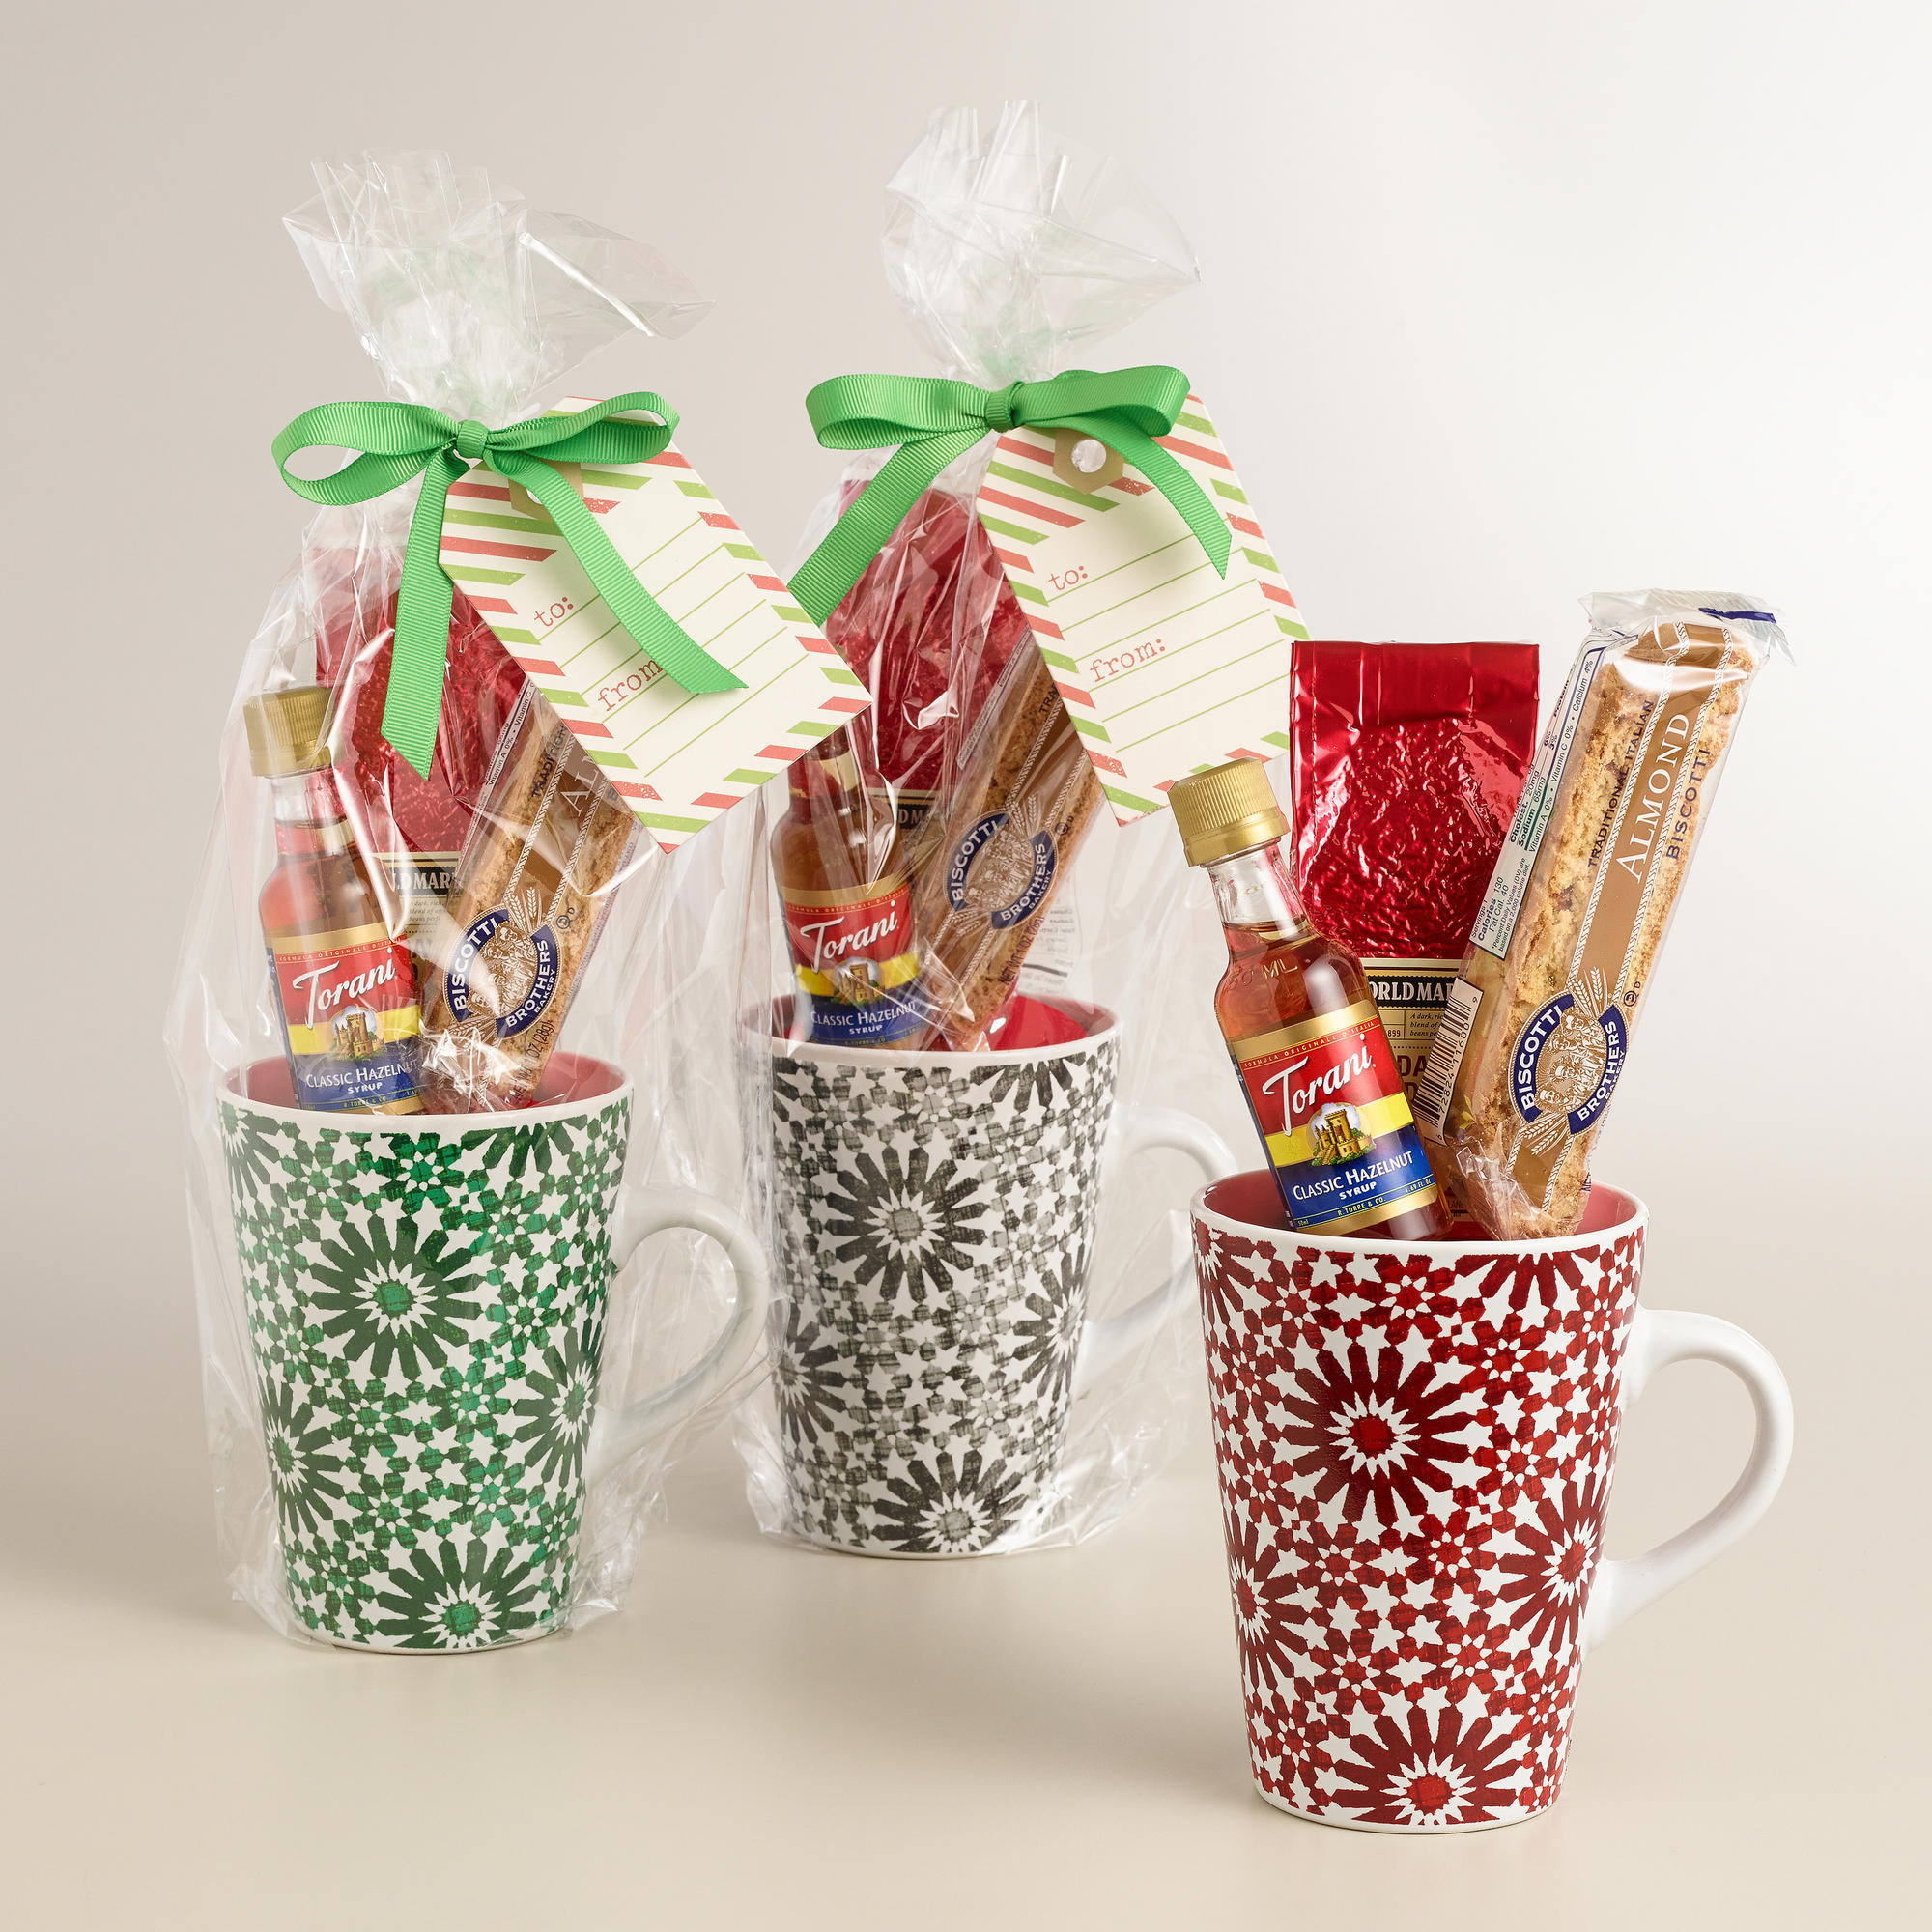 World market holiday blend coffee mug from cost plus